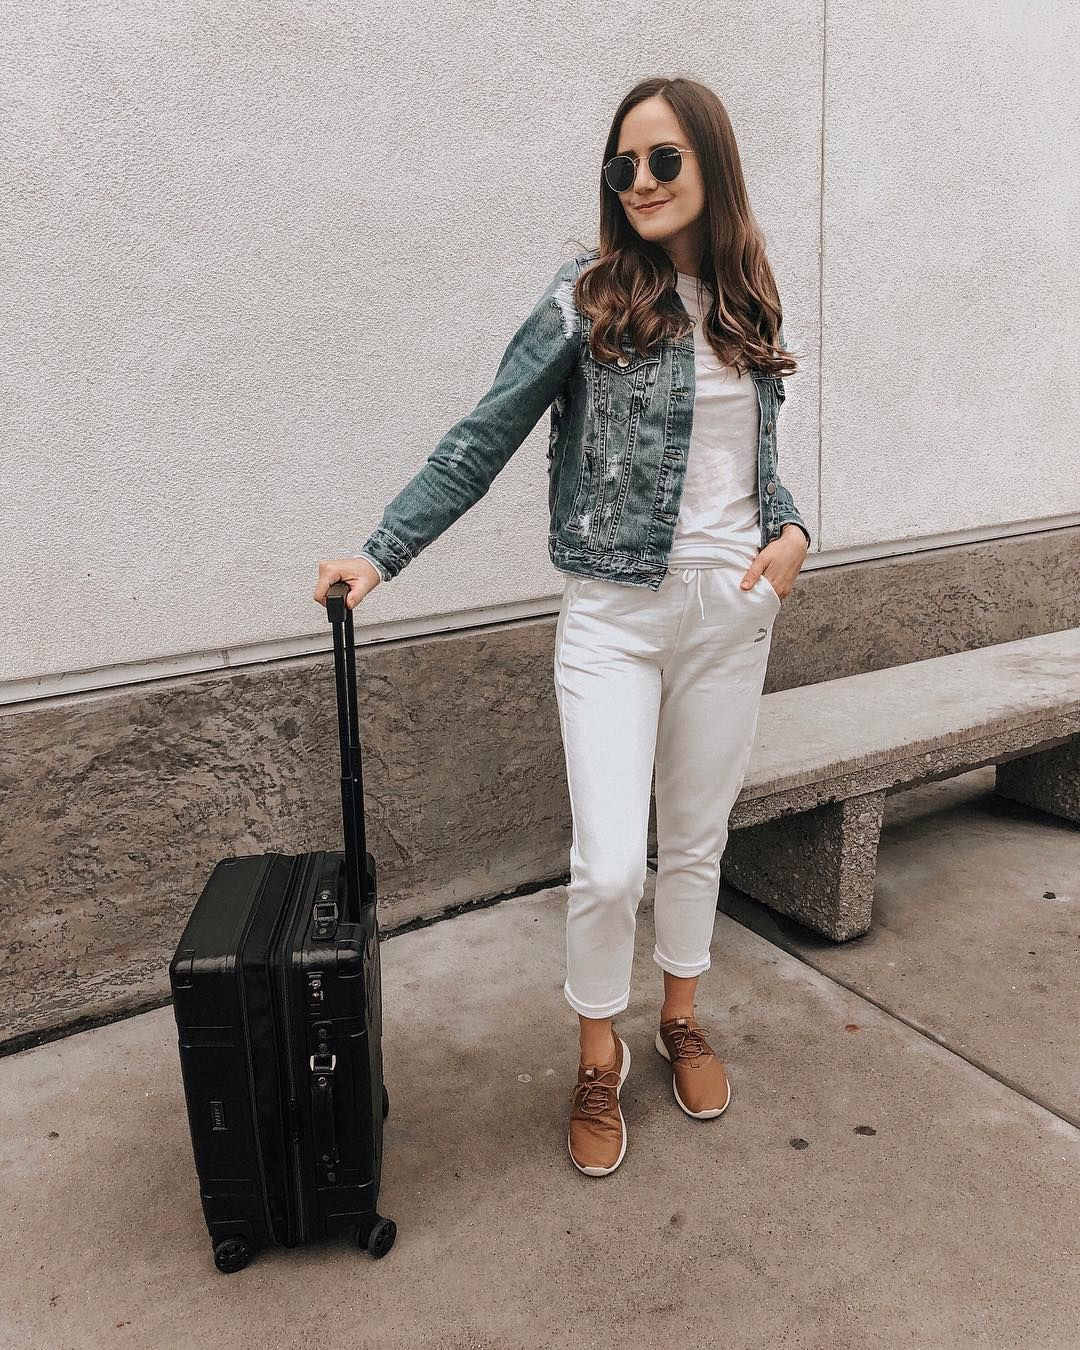 Girlmeetsgold Travel Style White Jogger Pants Outfit All White Outfit How To Wear All White Denim White Joggers Comfy Travel Outfit Fashion Travel Outfit [ 1350 x 1080 Pixel ]